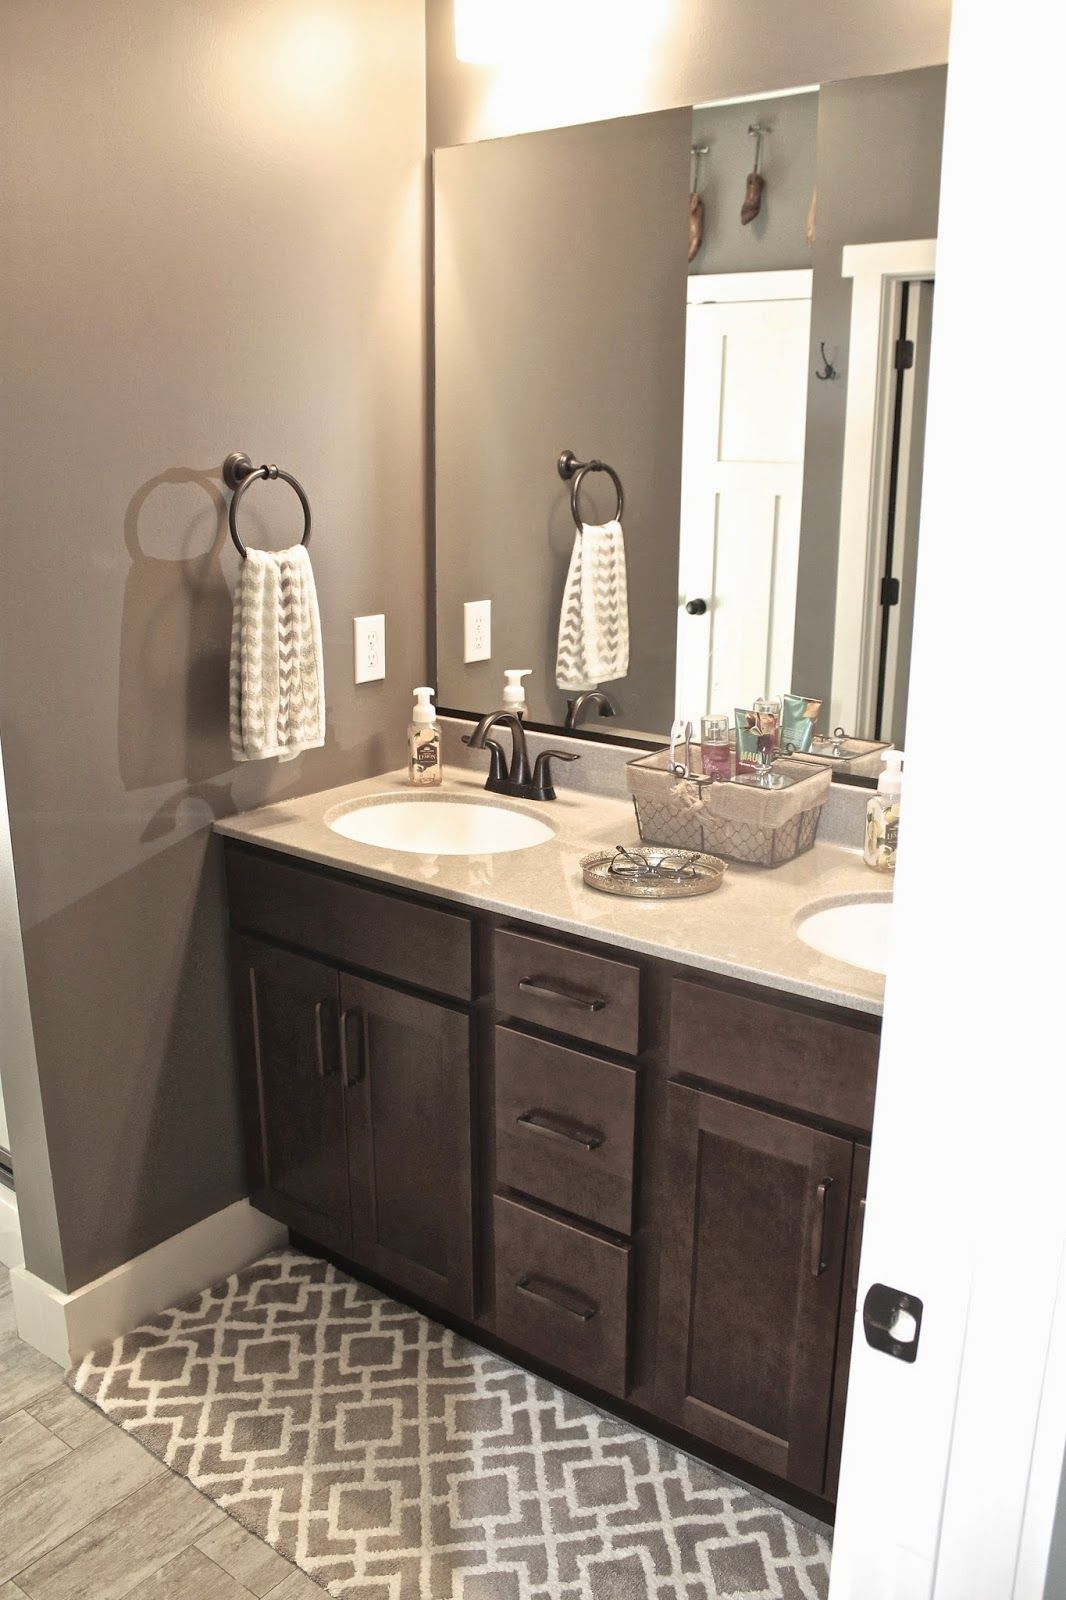 mink and dover white favorite paint colors brown bathroom - Painting Bathroom Cabinets Brown